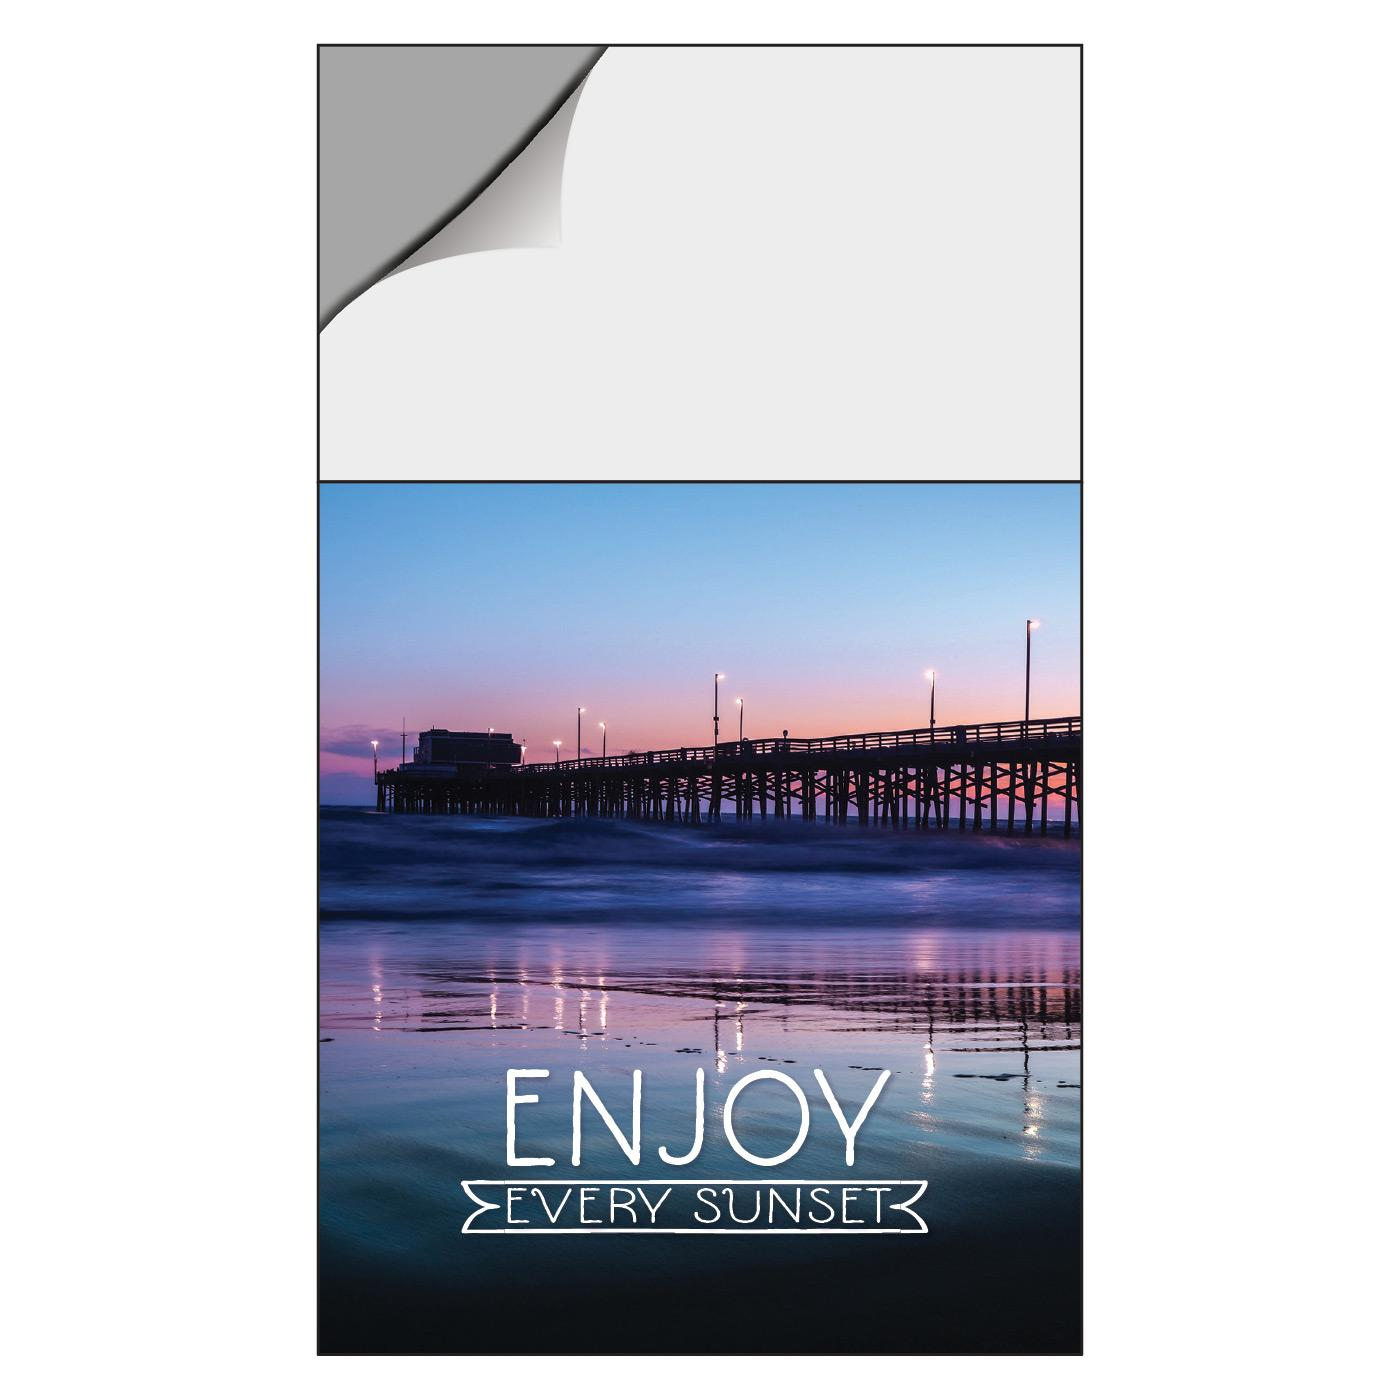 Calendar Magnet with Pier at Sunset